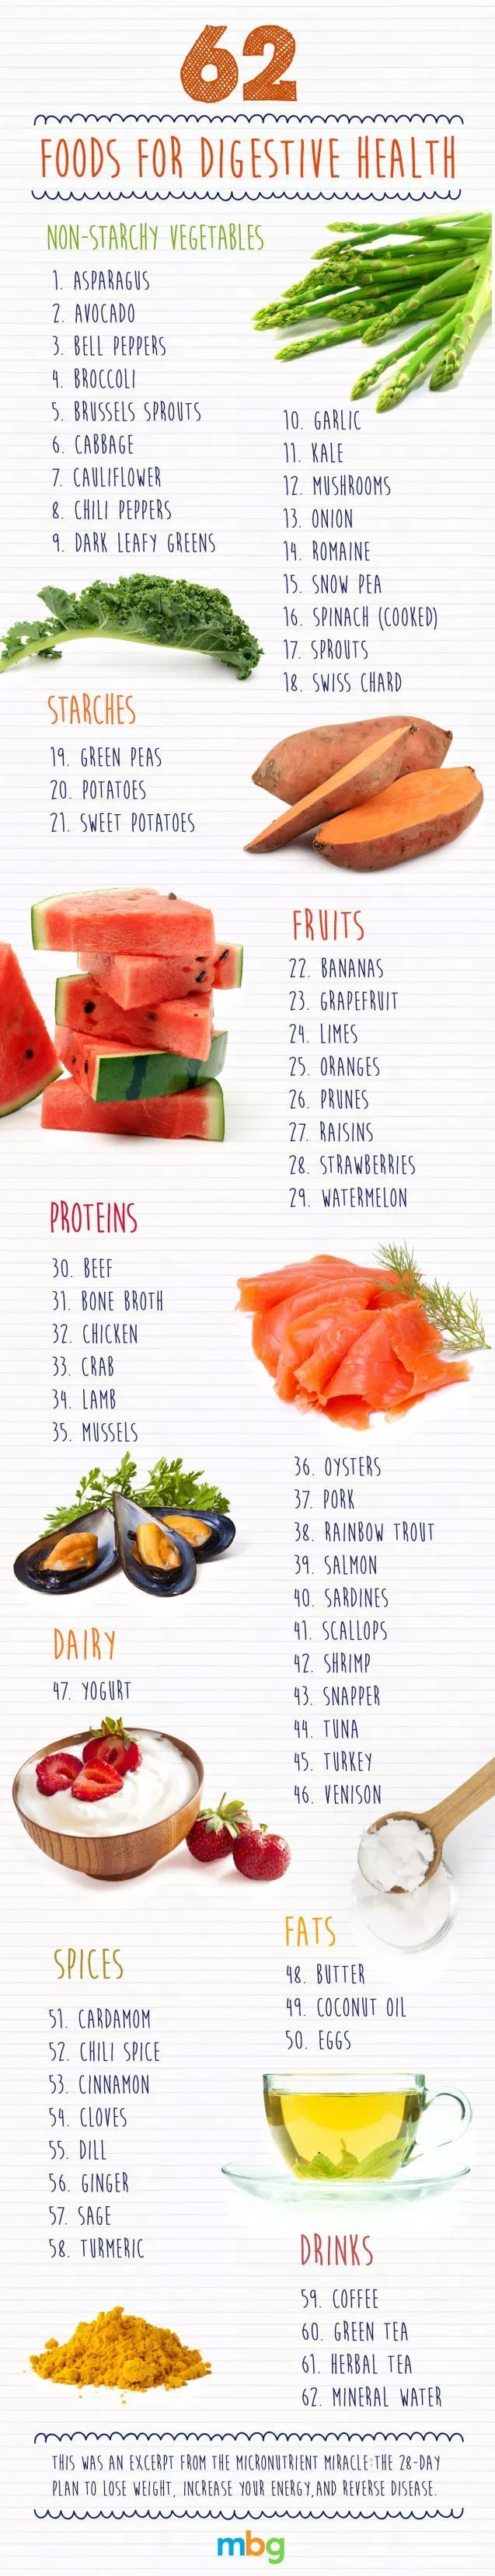 62 FOODS FOR DIGESTIVE HEALTH HIGH IN MAGNESIUM, IRON, ZINC AND B VITAMINS (infographic)